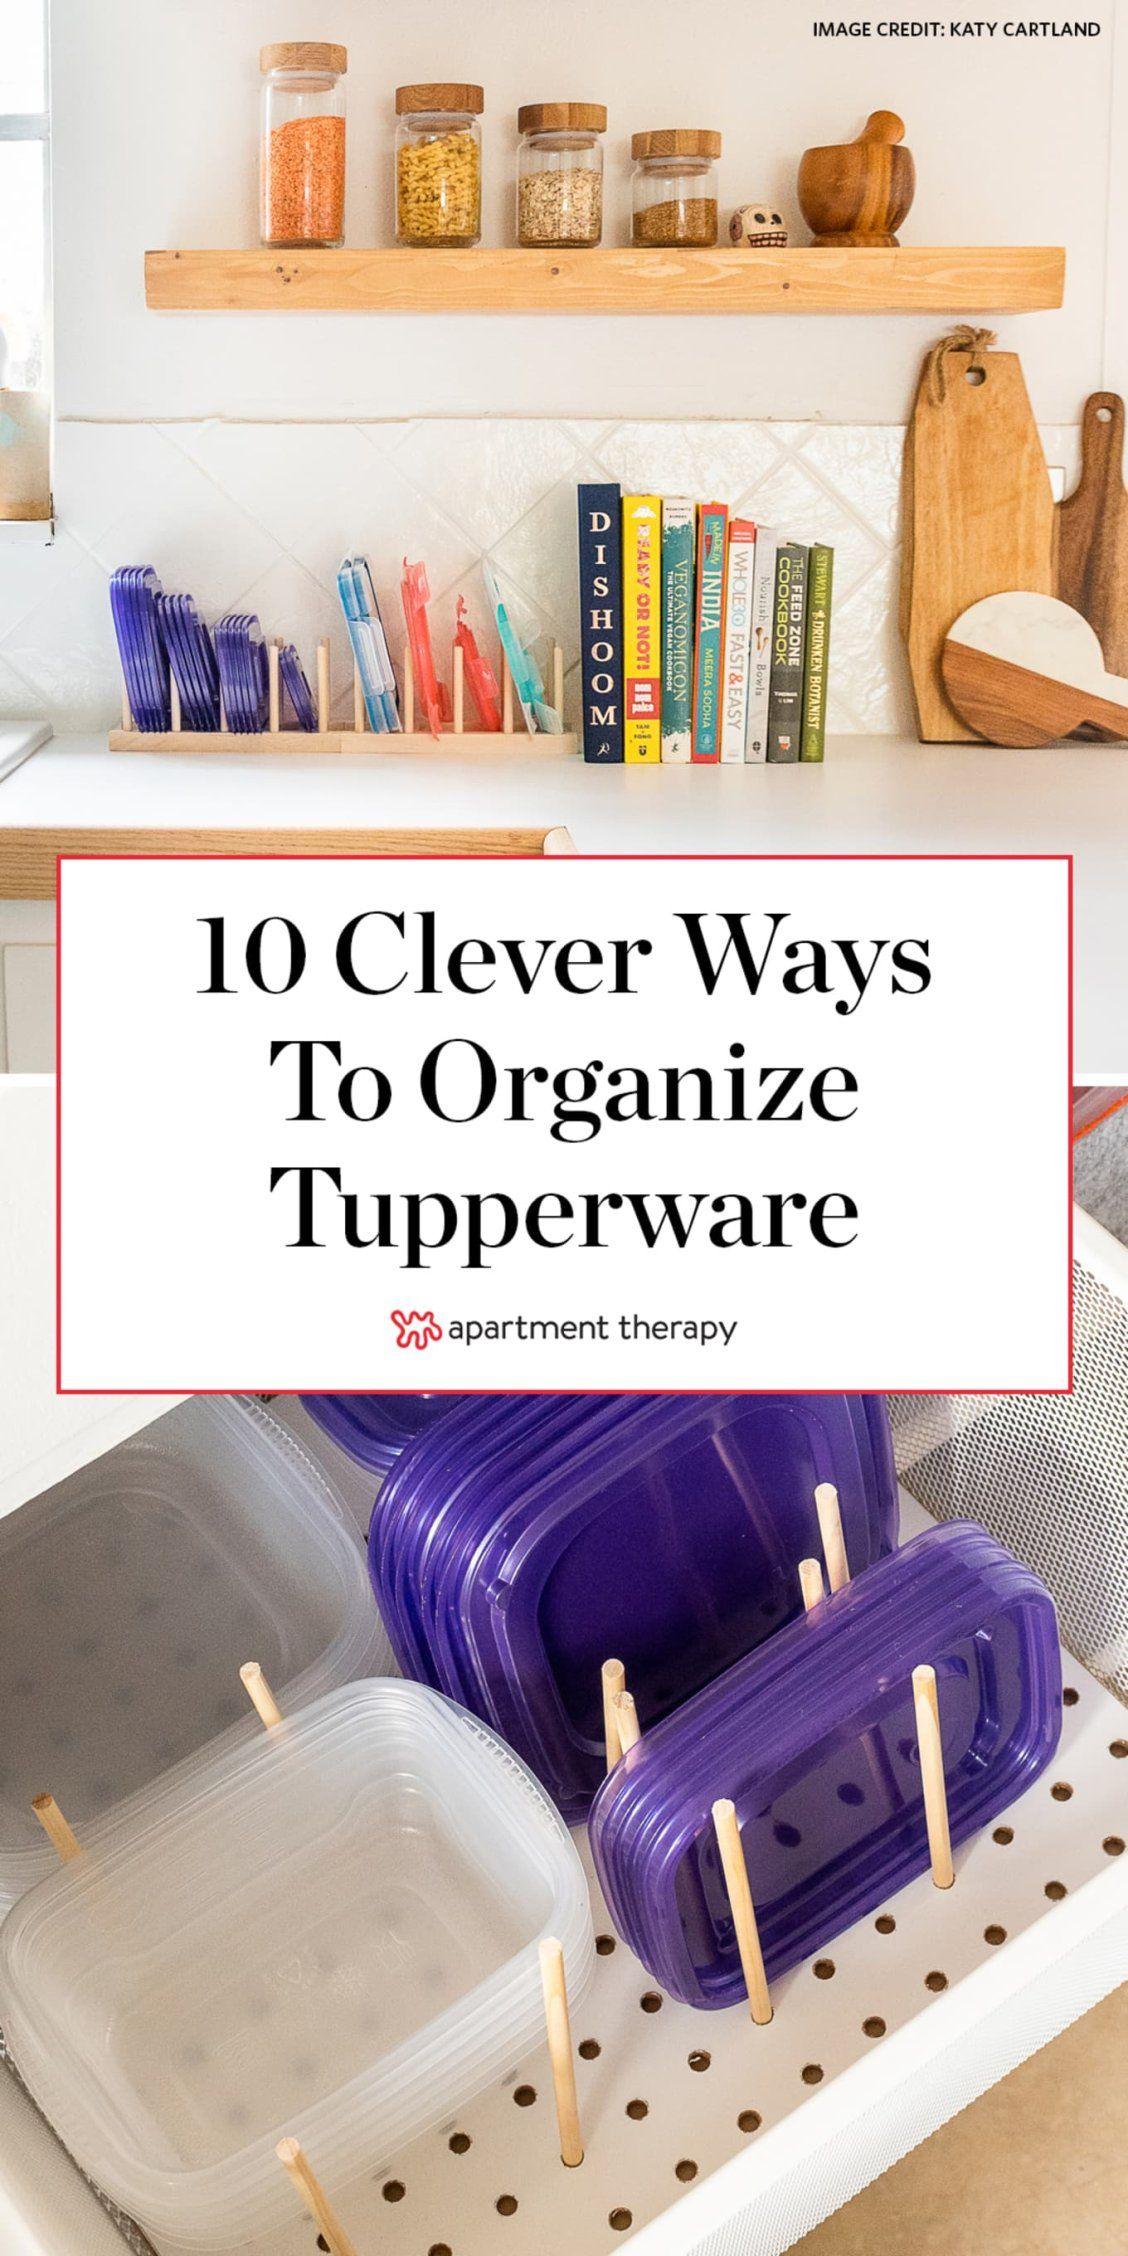 Raise your hand if, despite your best efforts, Tupperware and other plastic—or even glass—food storage containers always seem to take over your entire kitchen. Here are 10 clever ways to organize your tupperware. #tupperware #tupperwareorganization #lidorganization #kitchenideas #kitchenorganization #kitchenstorage #organizingideas #storageideas